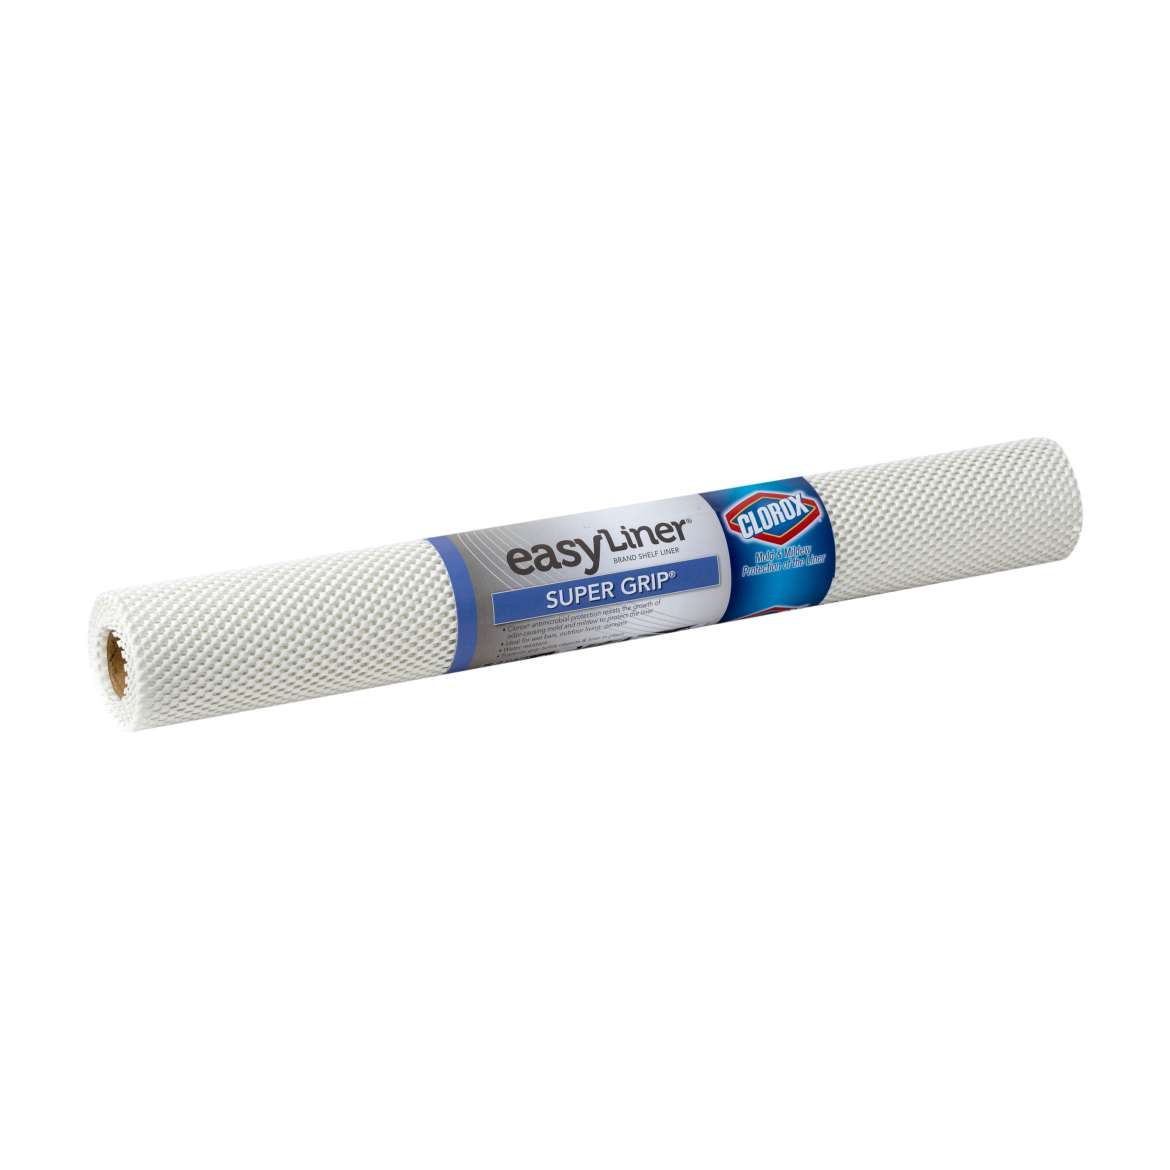 Super Grip® Easy Liner® Brand Shelf Liner with Clorox® - White, 20 in. x 6 ft. Image